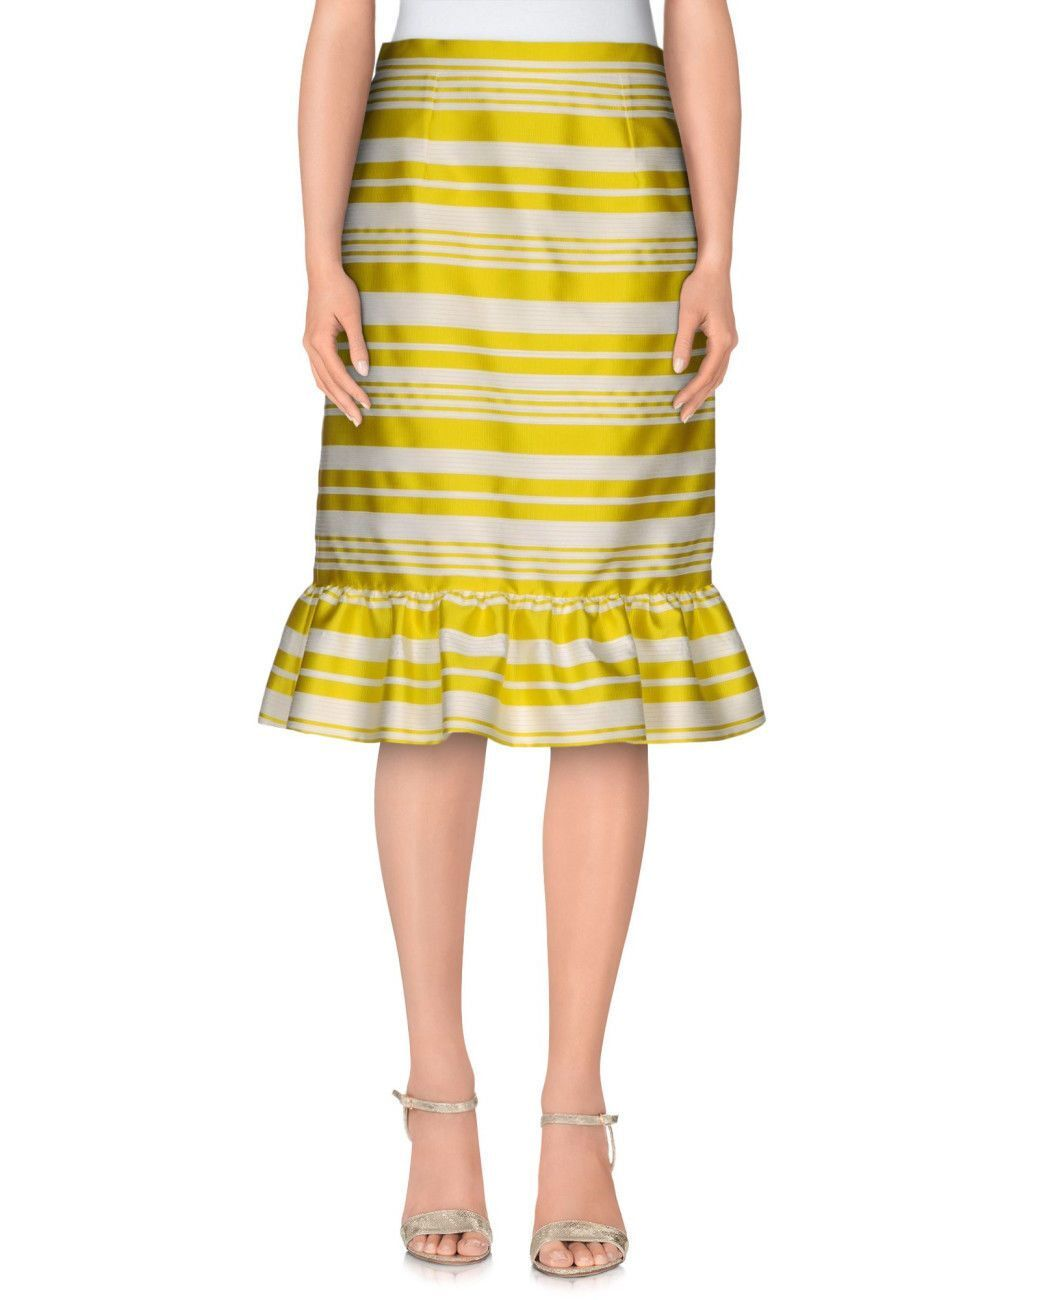 Red Valentino  Striped Jacquard Pencil Skirt NWT SZ 42 Yellow